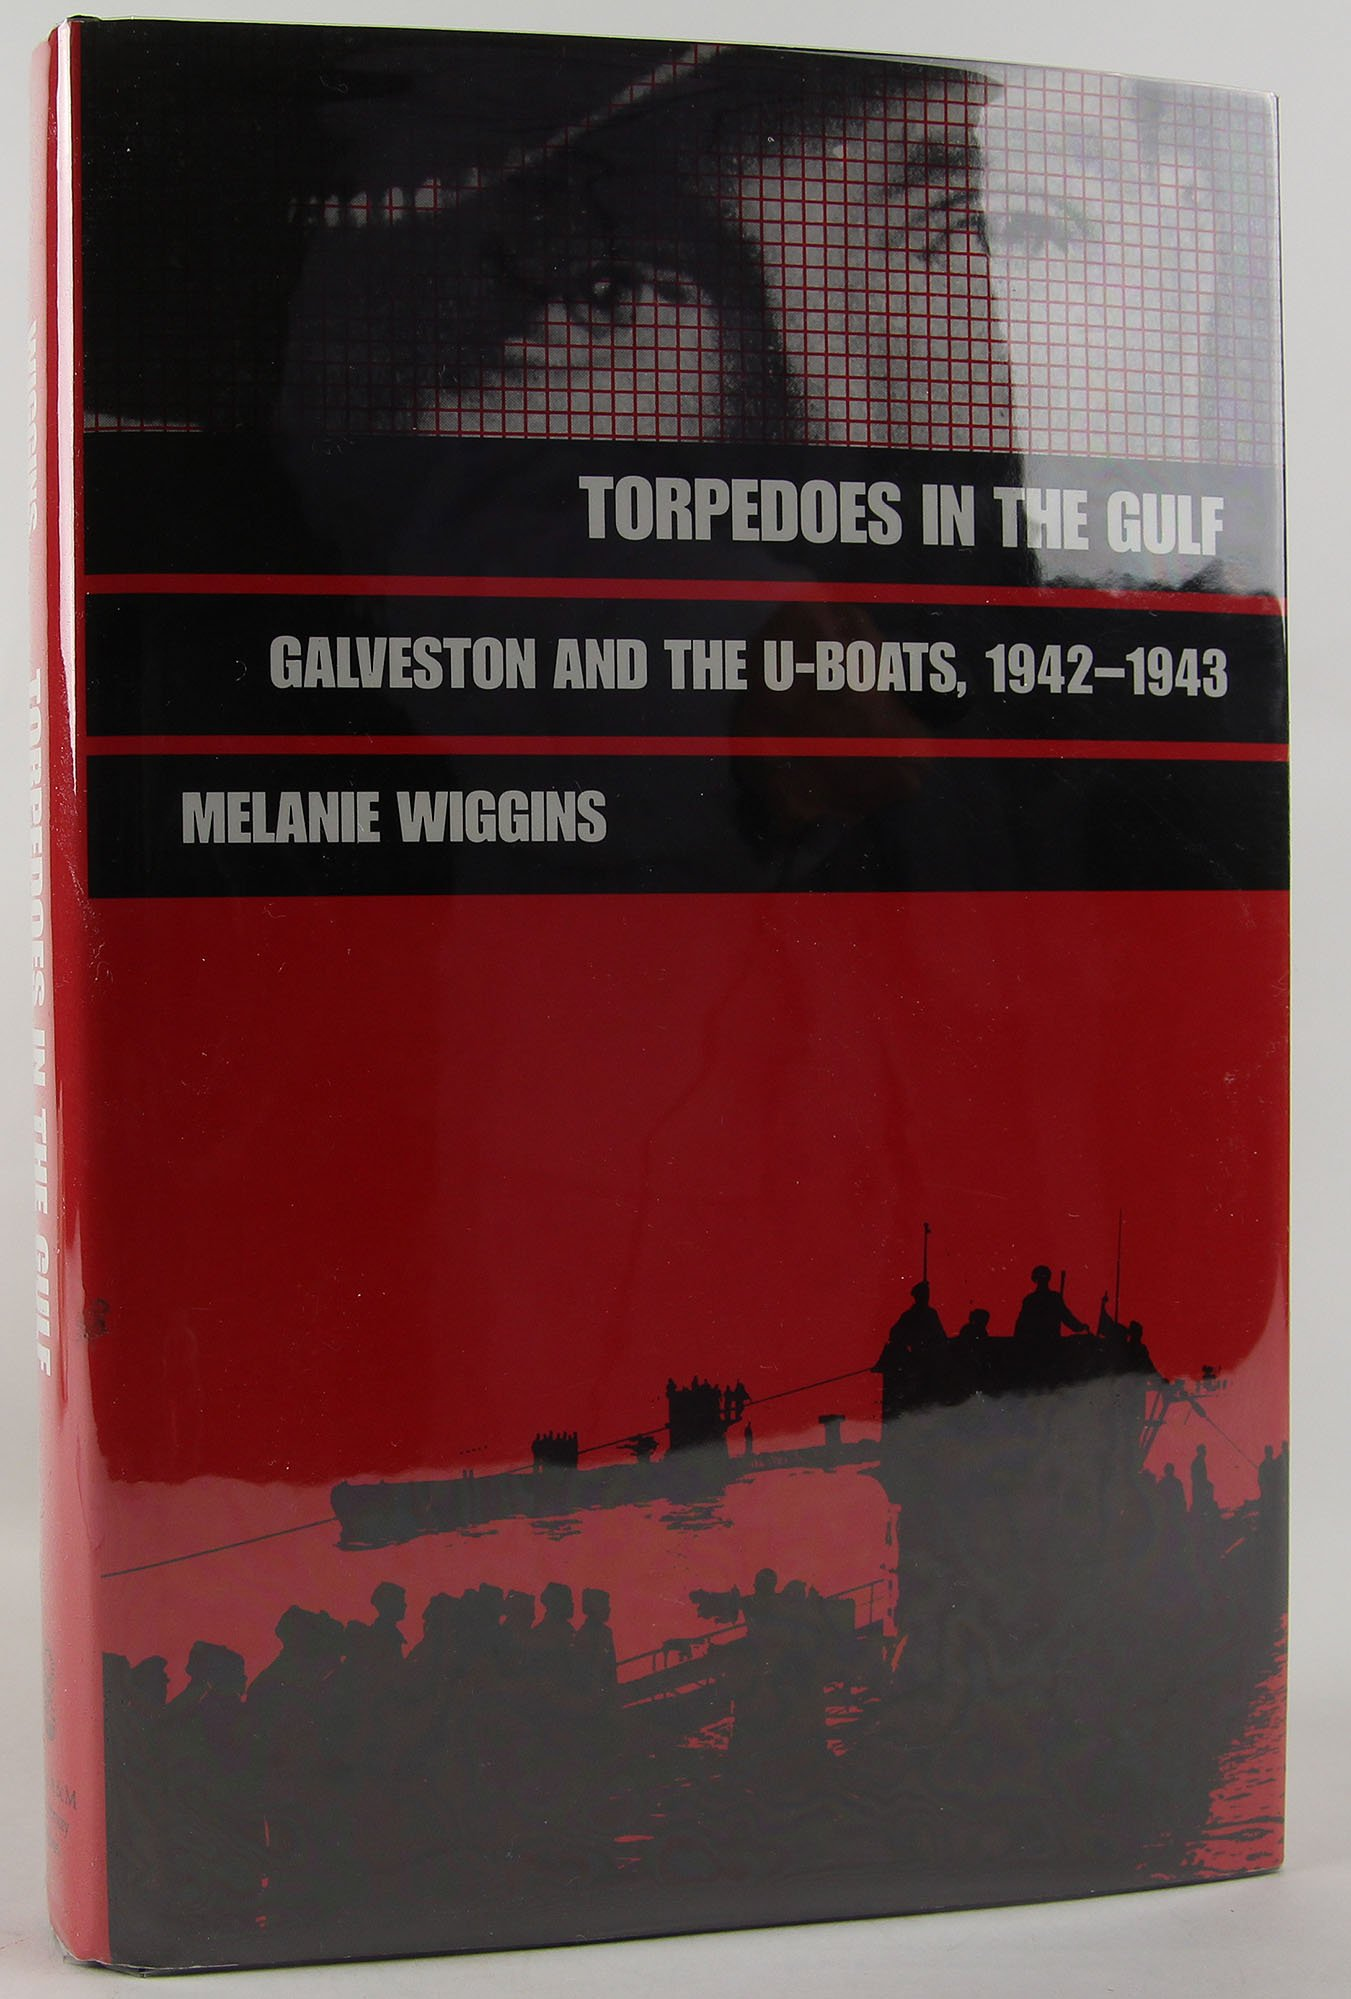 Torpedoes in the Gulf: Galveston and the U-Boats, 1942-1943 (Texas a & M University Military History Series)